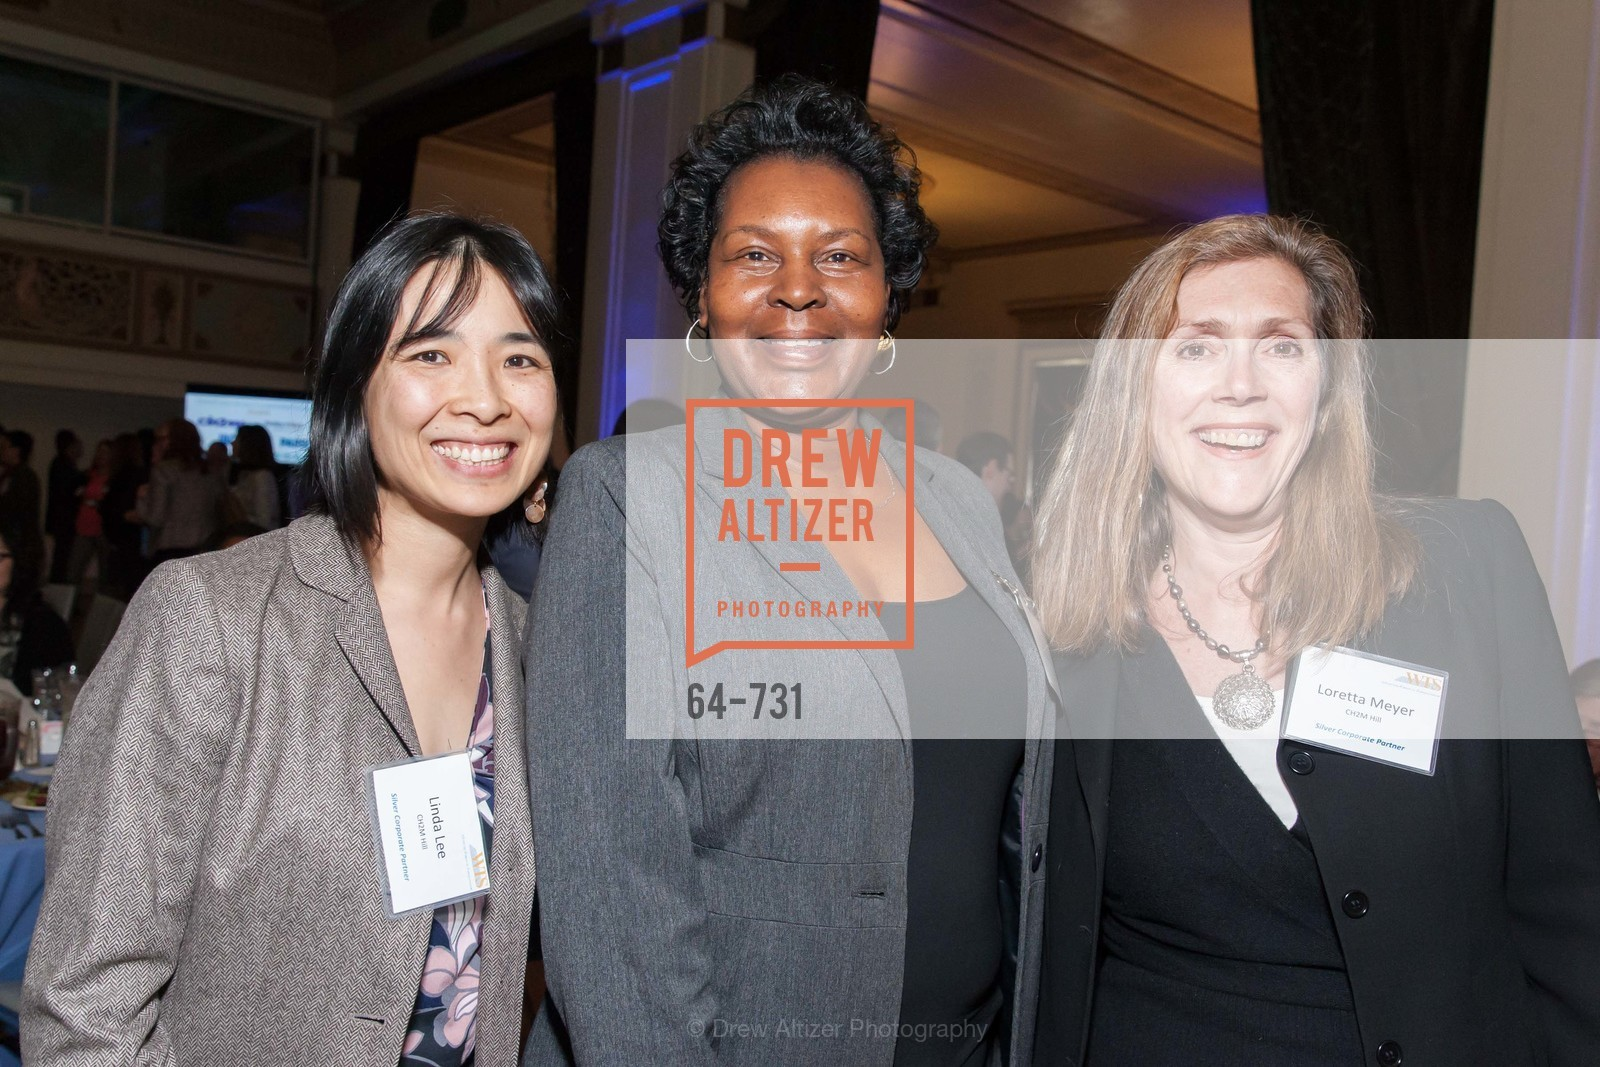 Linda Lee, Loretta Meyer, WOMEN'S TRANSPORTATION SEMINAR SF Bay Area Chapter Annual Scholarship Awards, US, May 15th, 2015,Drew Altizer, Drew Altizer Photography, full-service event agency, private events, San Francisco photographer, photographer California